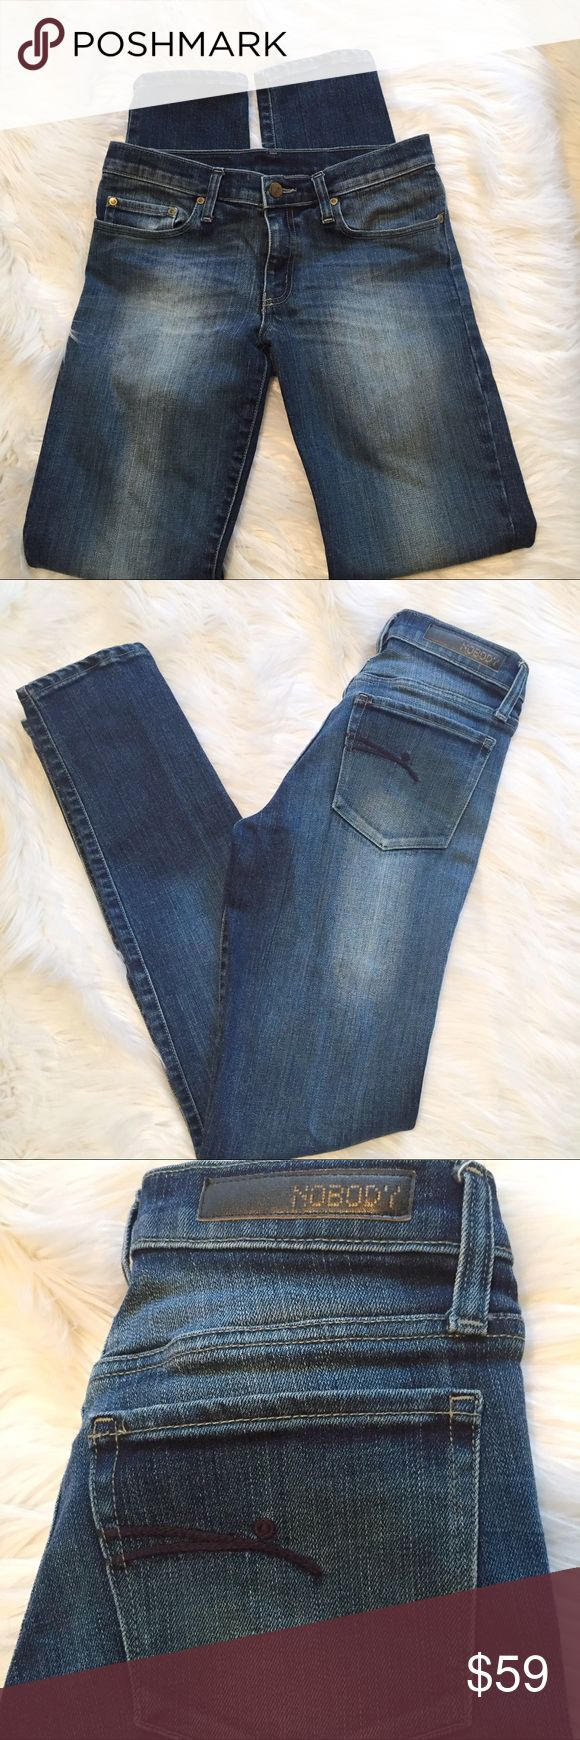 """Nobody Denim dark wash Midrise skinny jeans 28 x33 These photographed a bit lighter than they appear in person. Lovely Japanese Denim made in Australia- good condition weight and yet soft to the touch. Midrise skinny cut. 2% elastane. Size 28. 30"""" waist. 8"""" rise. 12.5"""" rear rise. 9.5"""" thigh measured flat. 33"""" inseam. Nobody Jeans Skinny"""